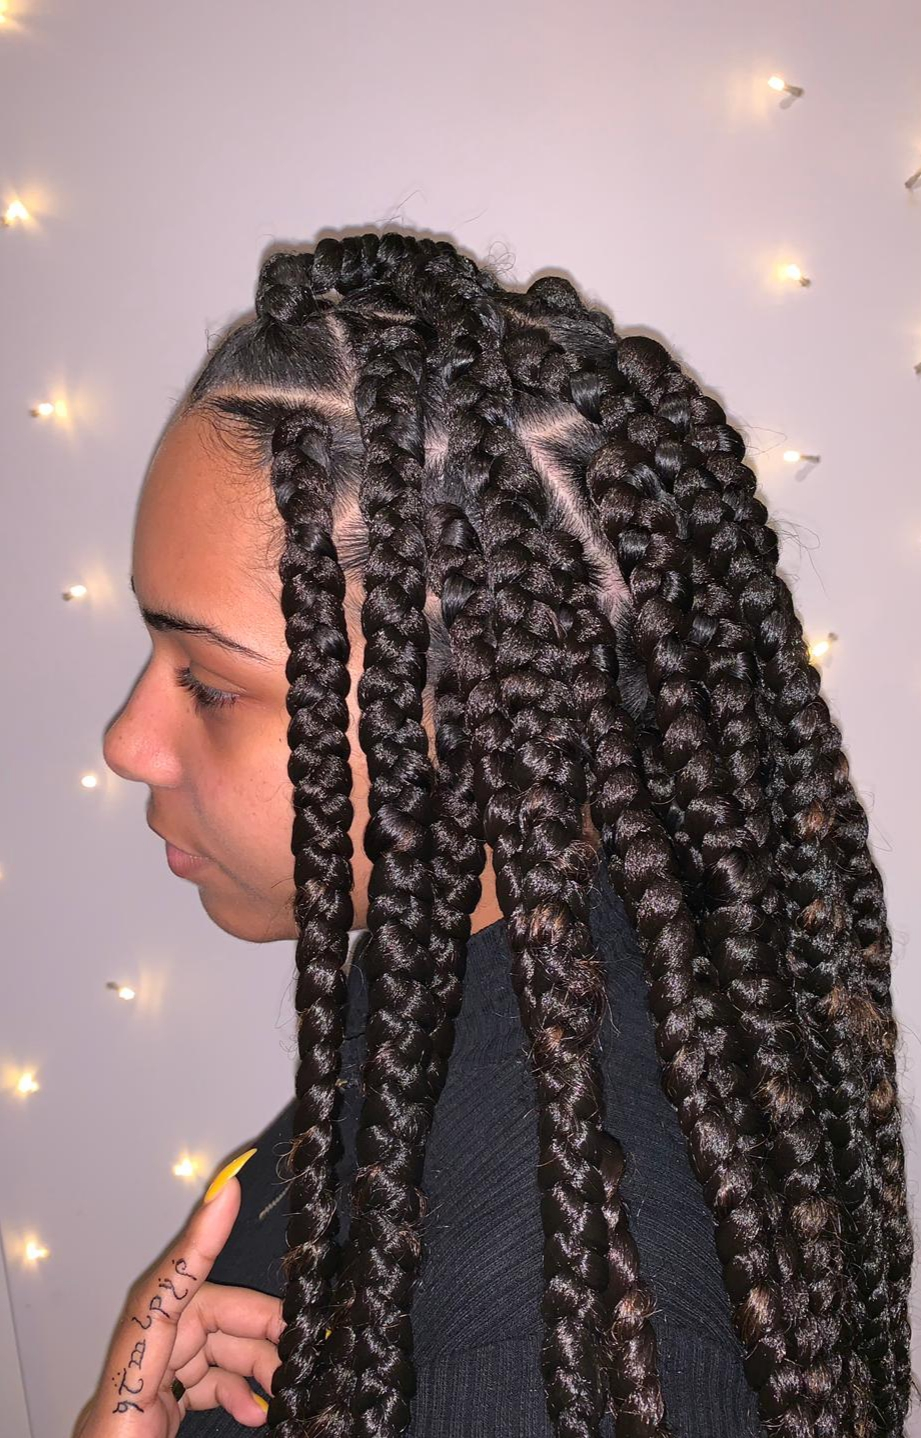 salon de coiffure afro tresse tresses box braids crochet braids vanilles tissages paris 75 77 78 91 92 93 94 95 RCIFHHJW